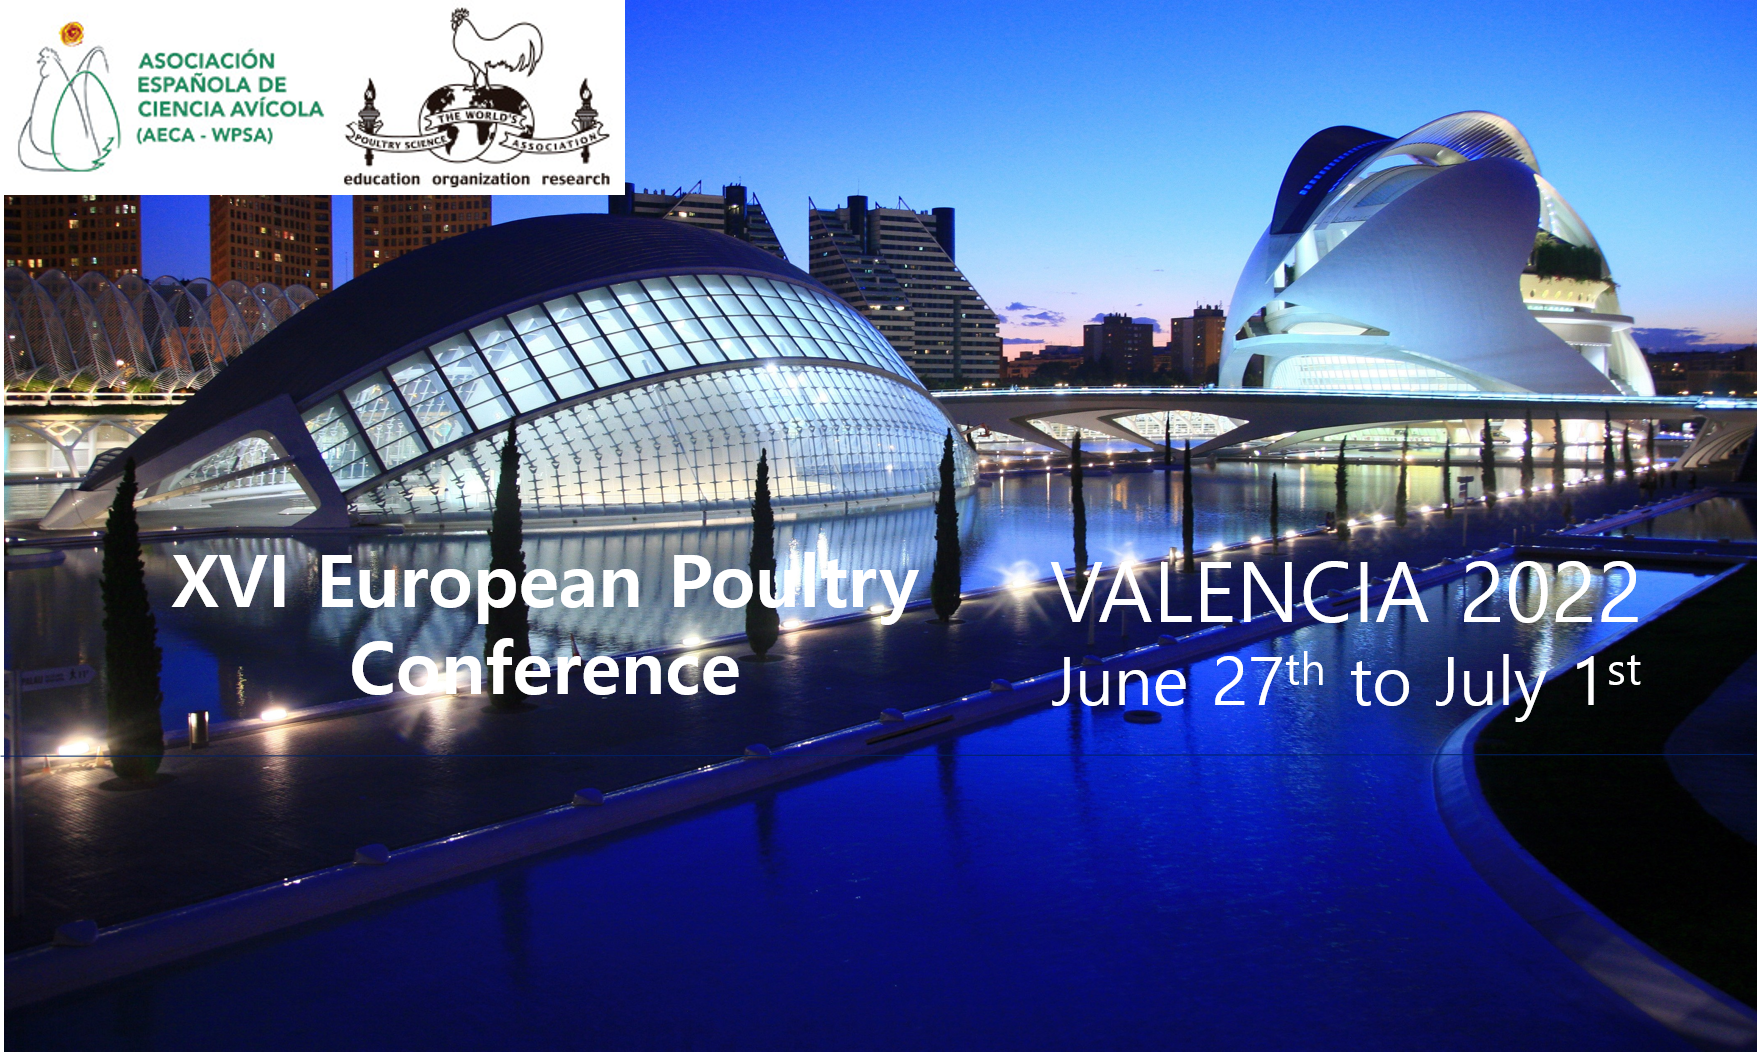 XVI-european-poultry-conference-valencia-2022